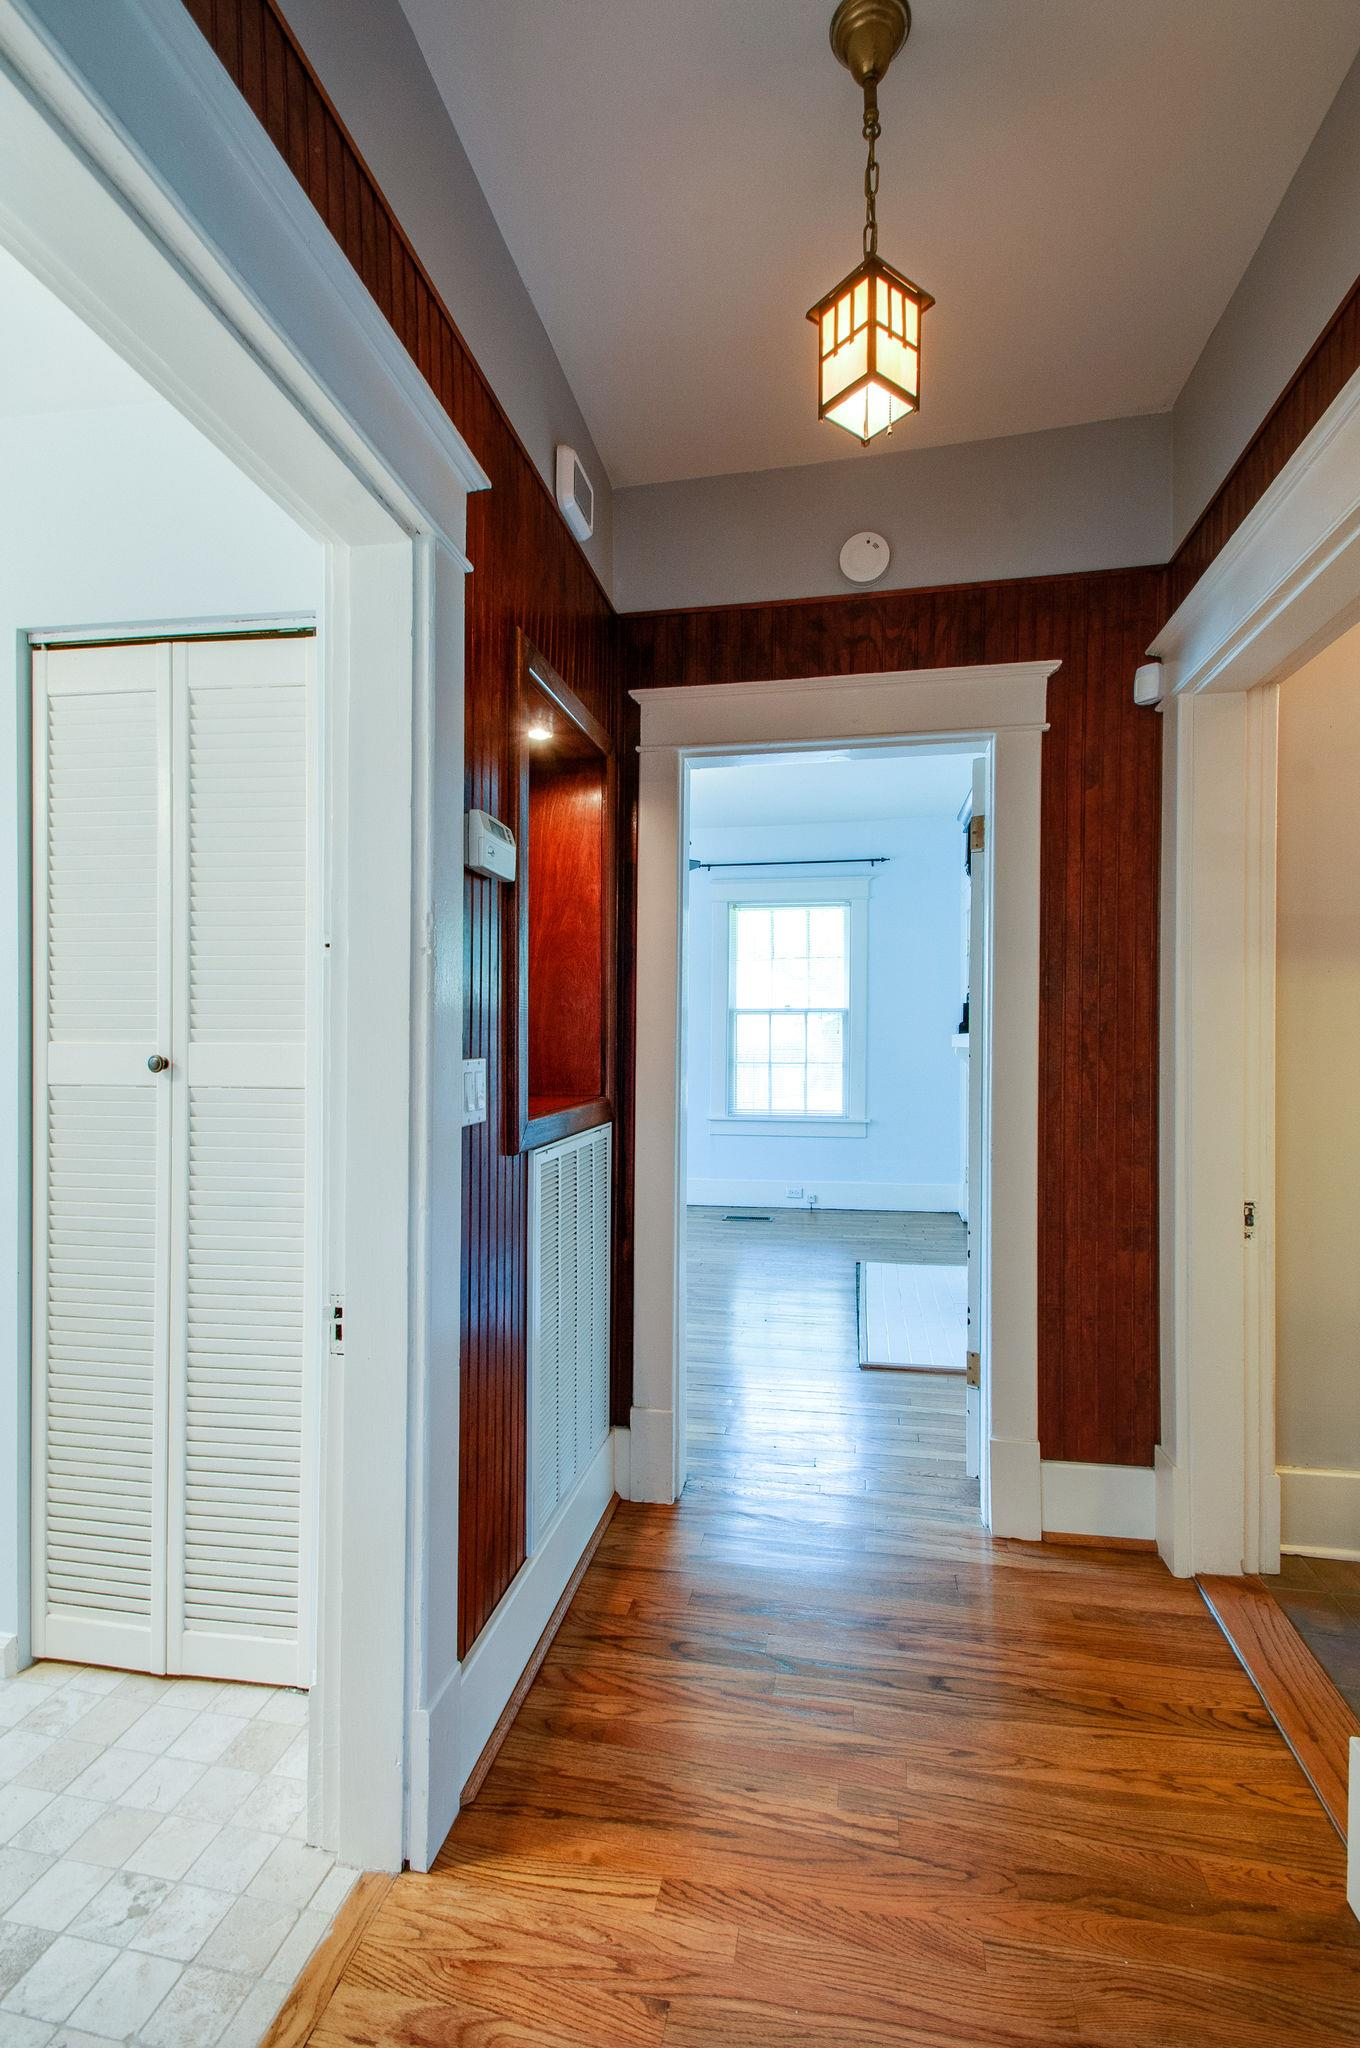 Historic home renovations - Follow along as we transform our 1920s bungalow! #historichomelove #thisoldhouse #oldhouselove